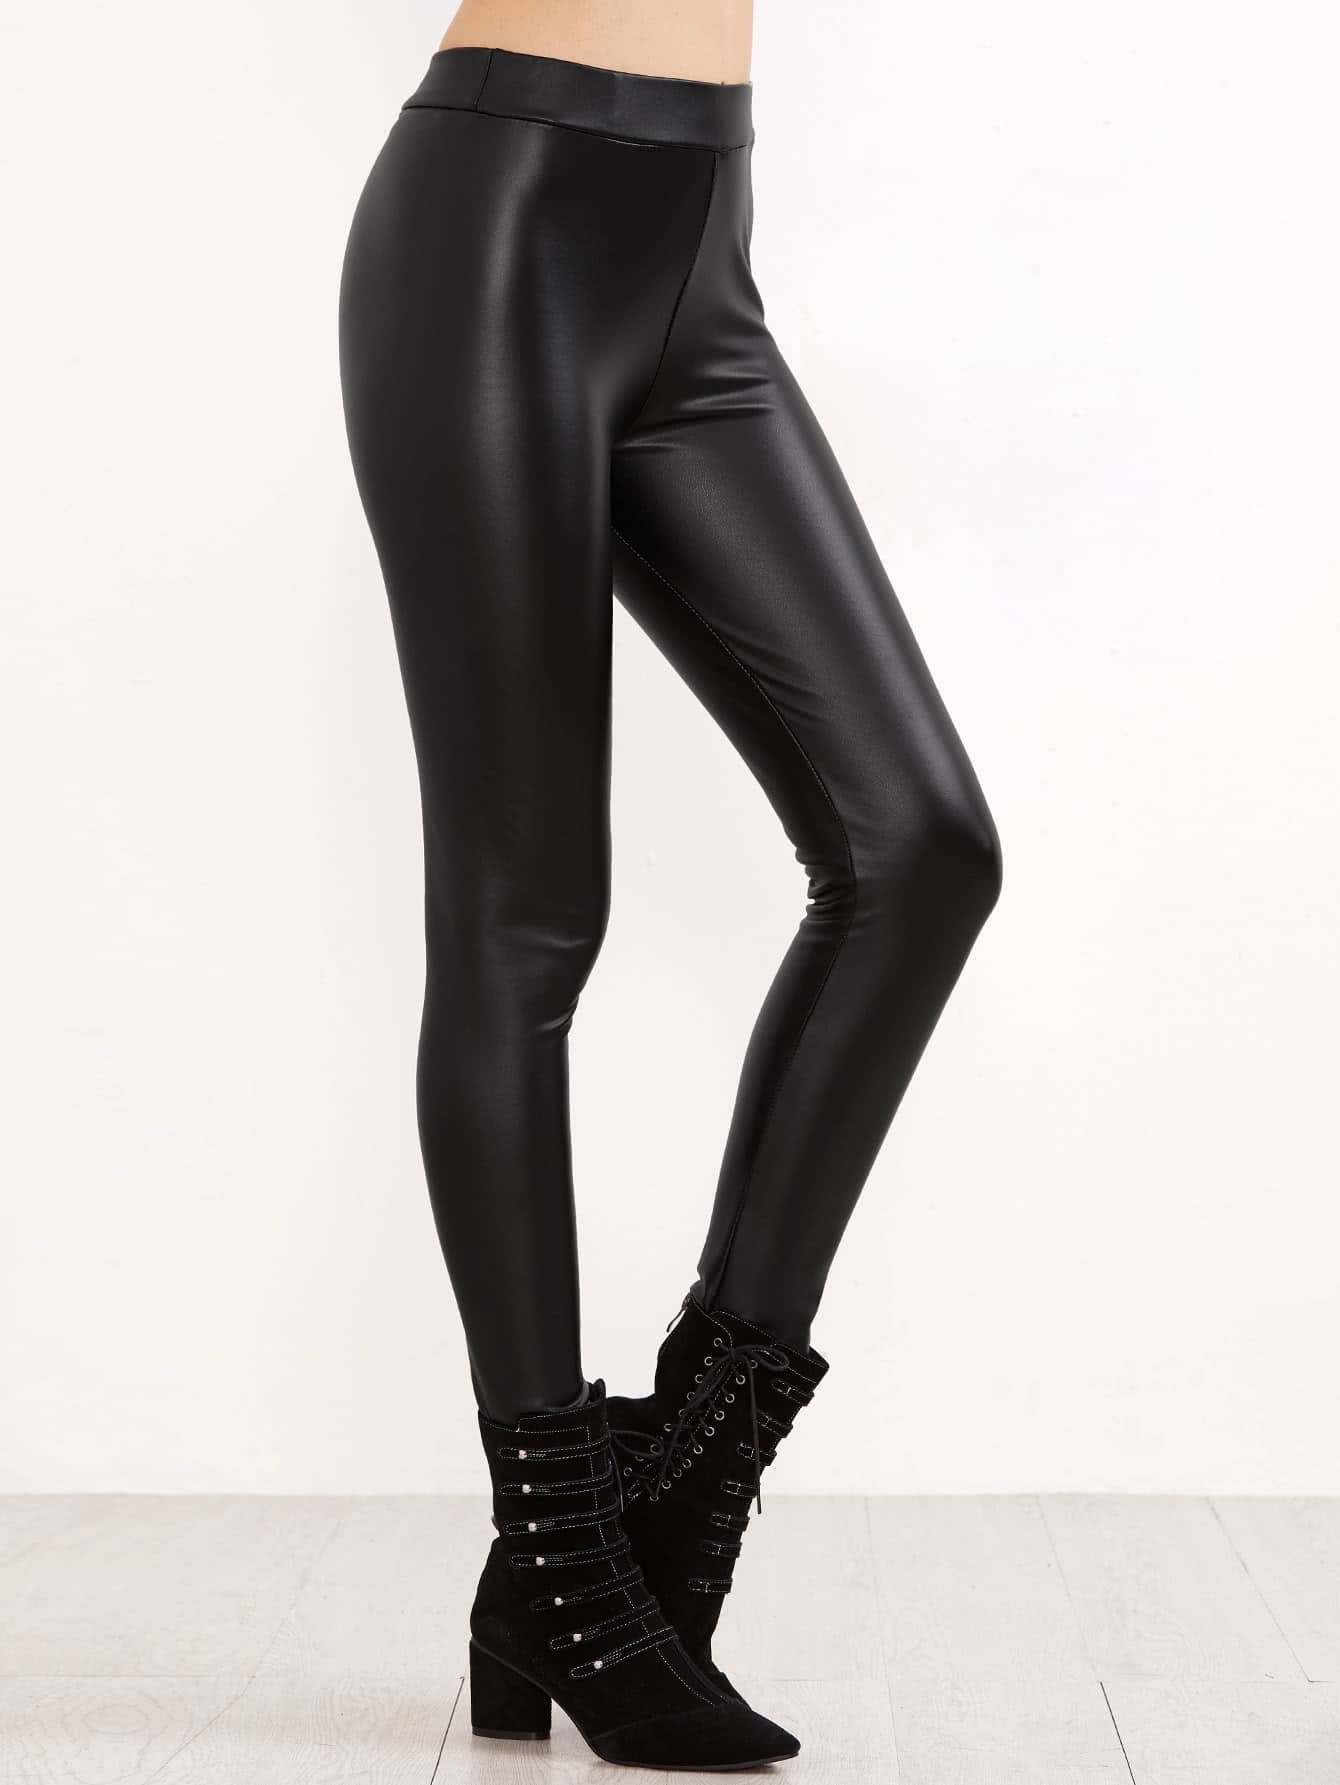 Find great deals on eBay for black leather leggings. Shop with confidence.